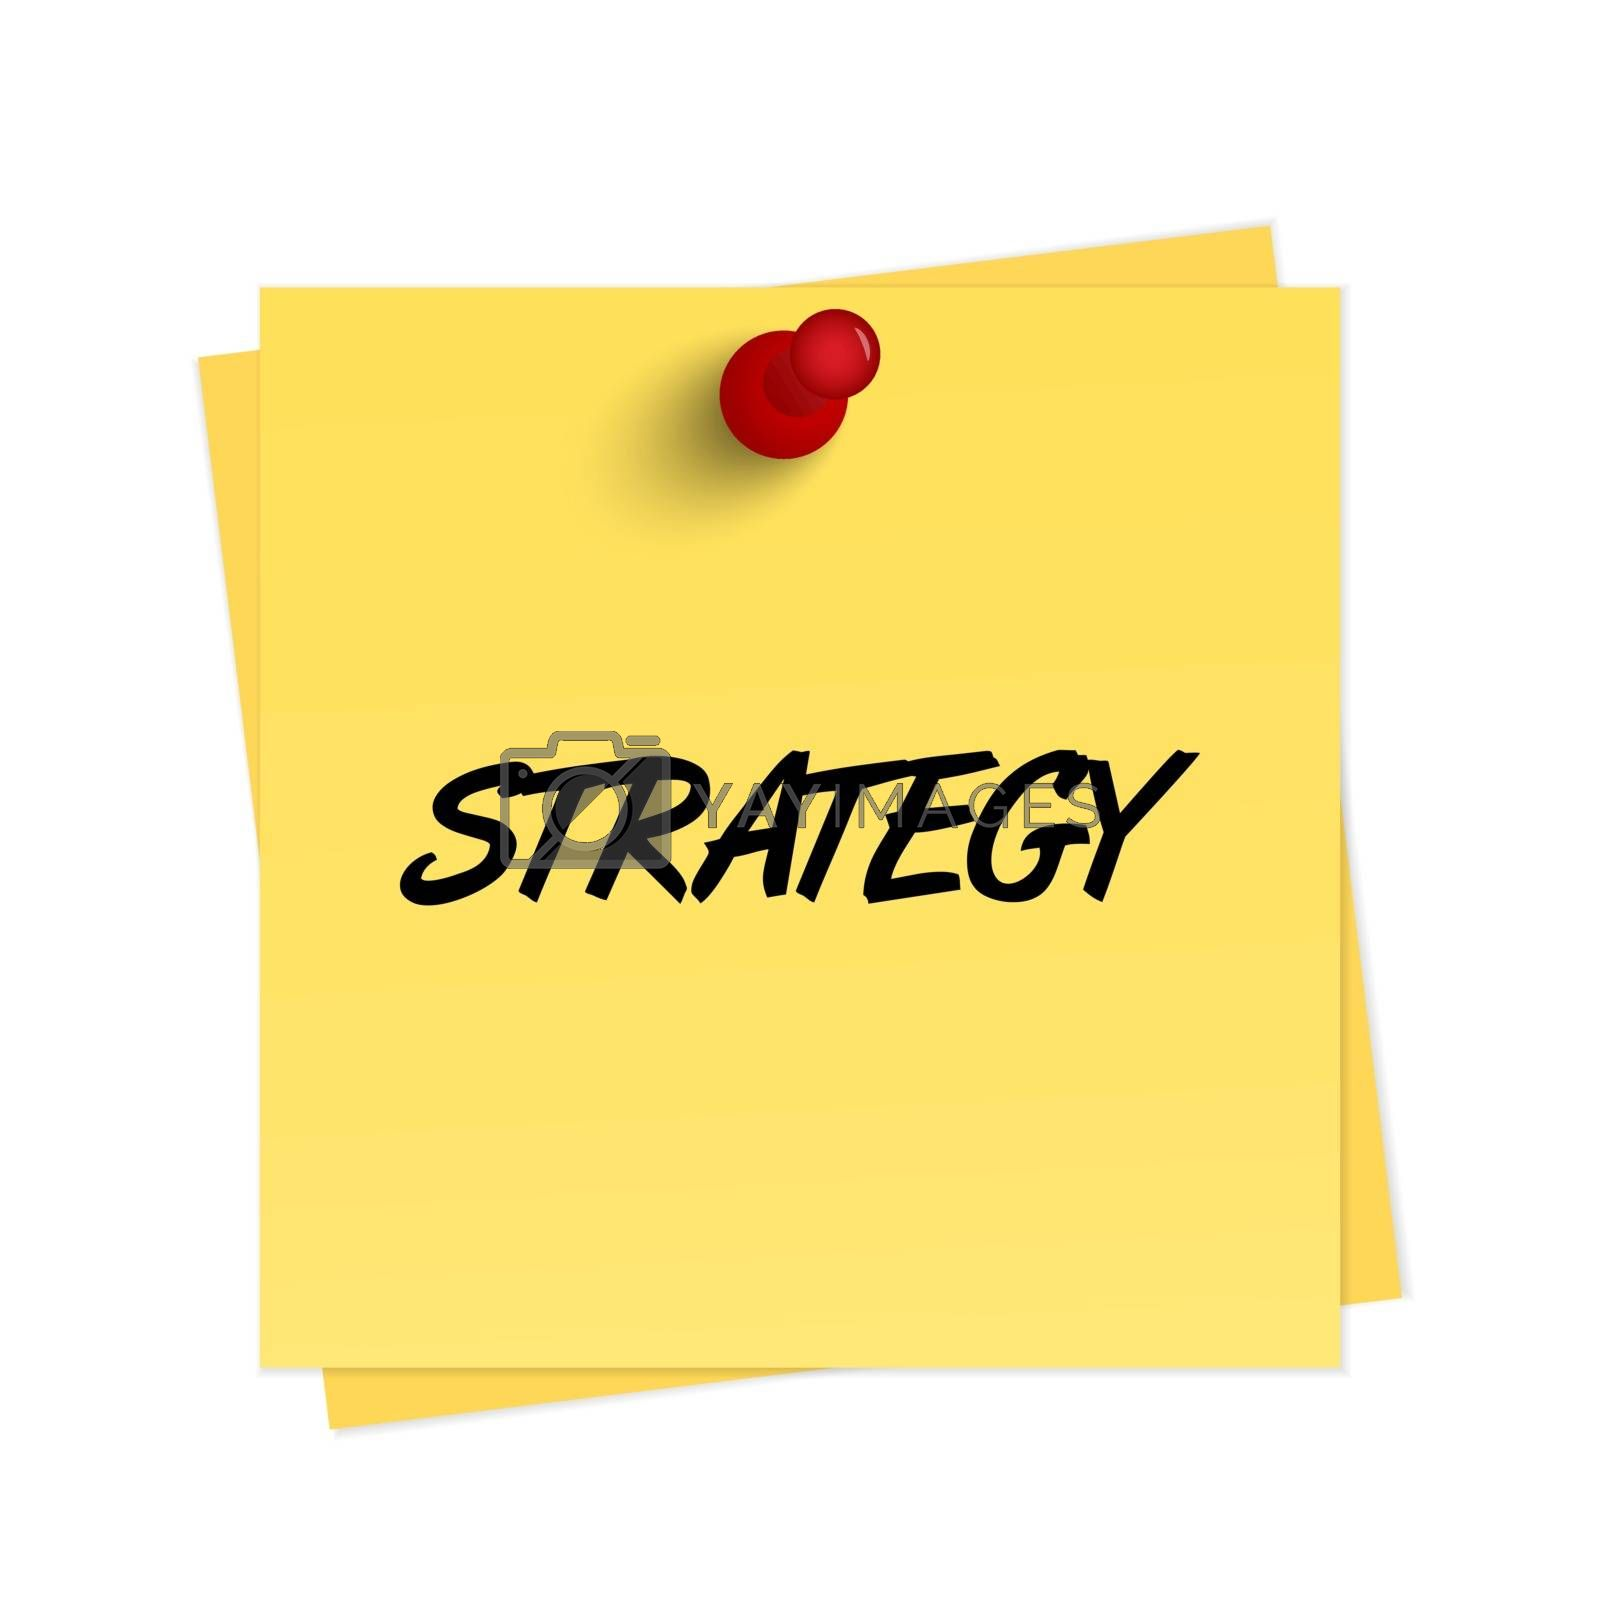 Royalty free image of Strategy text on reminder by simo988